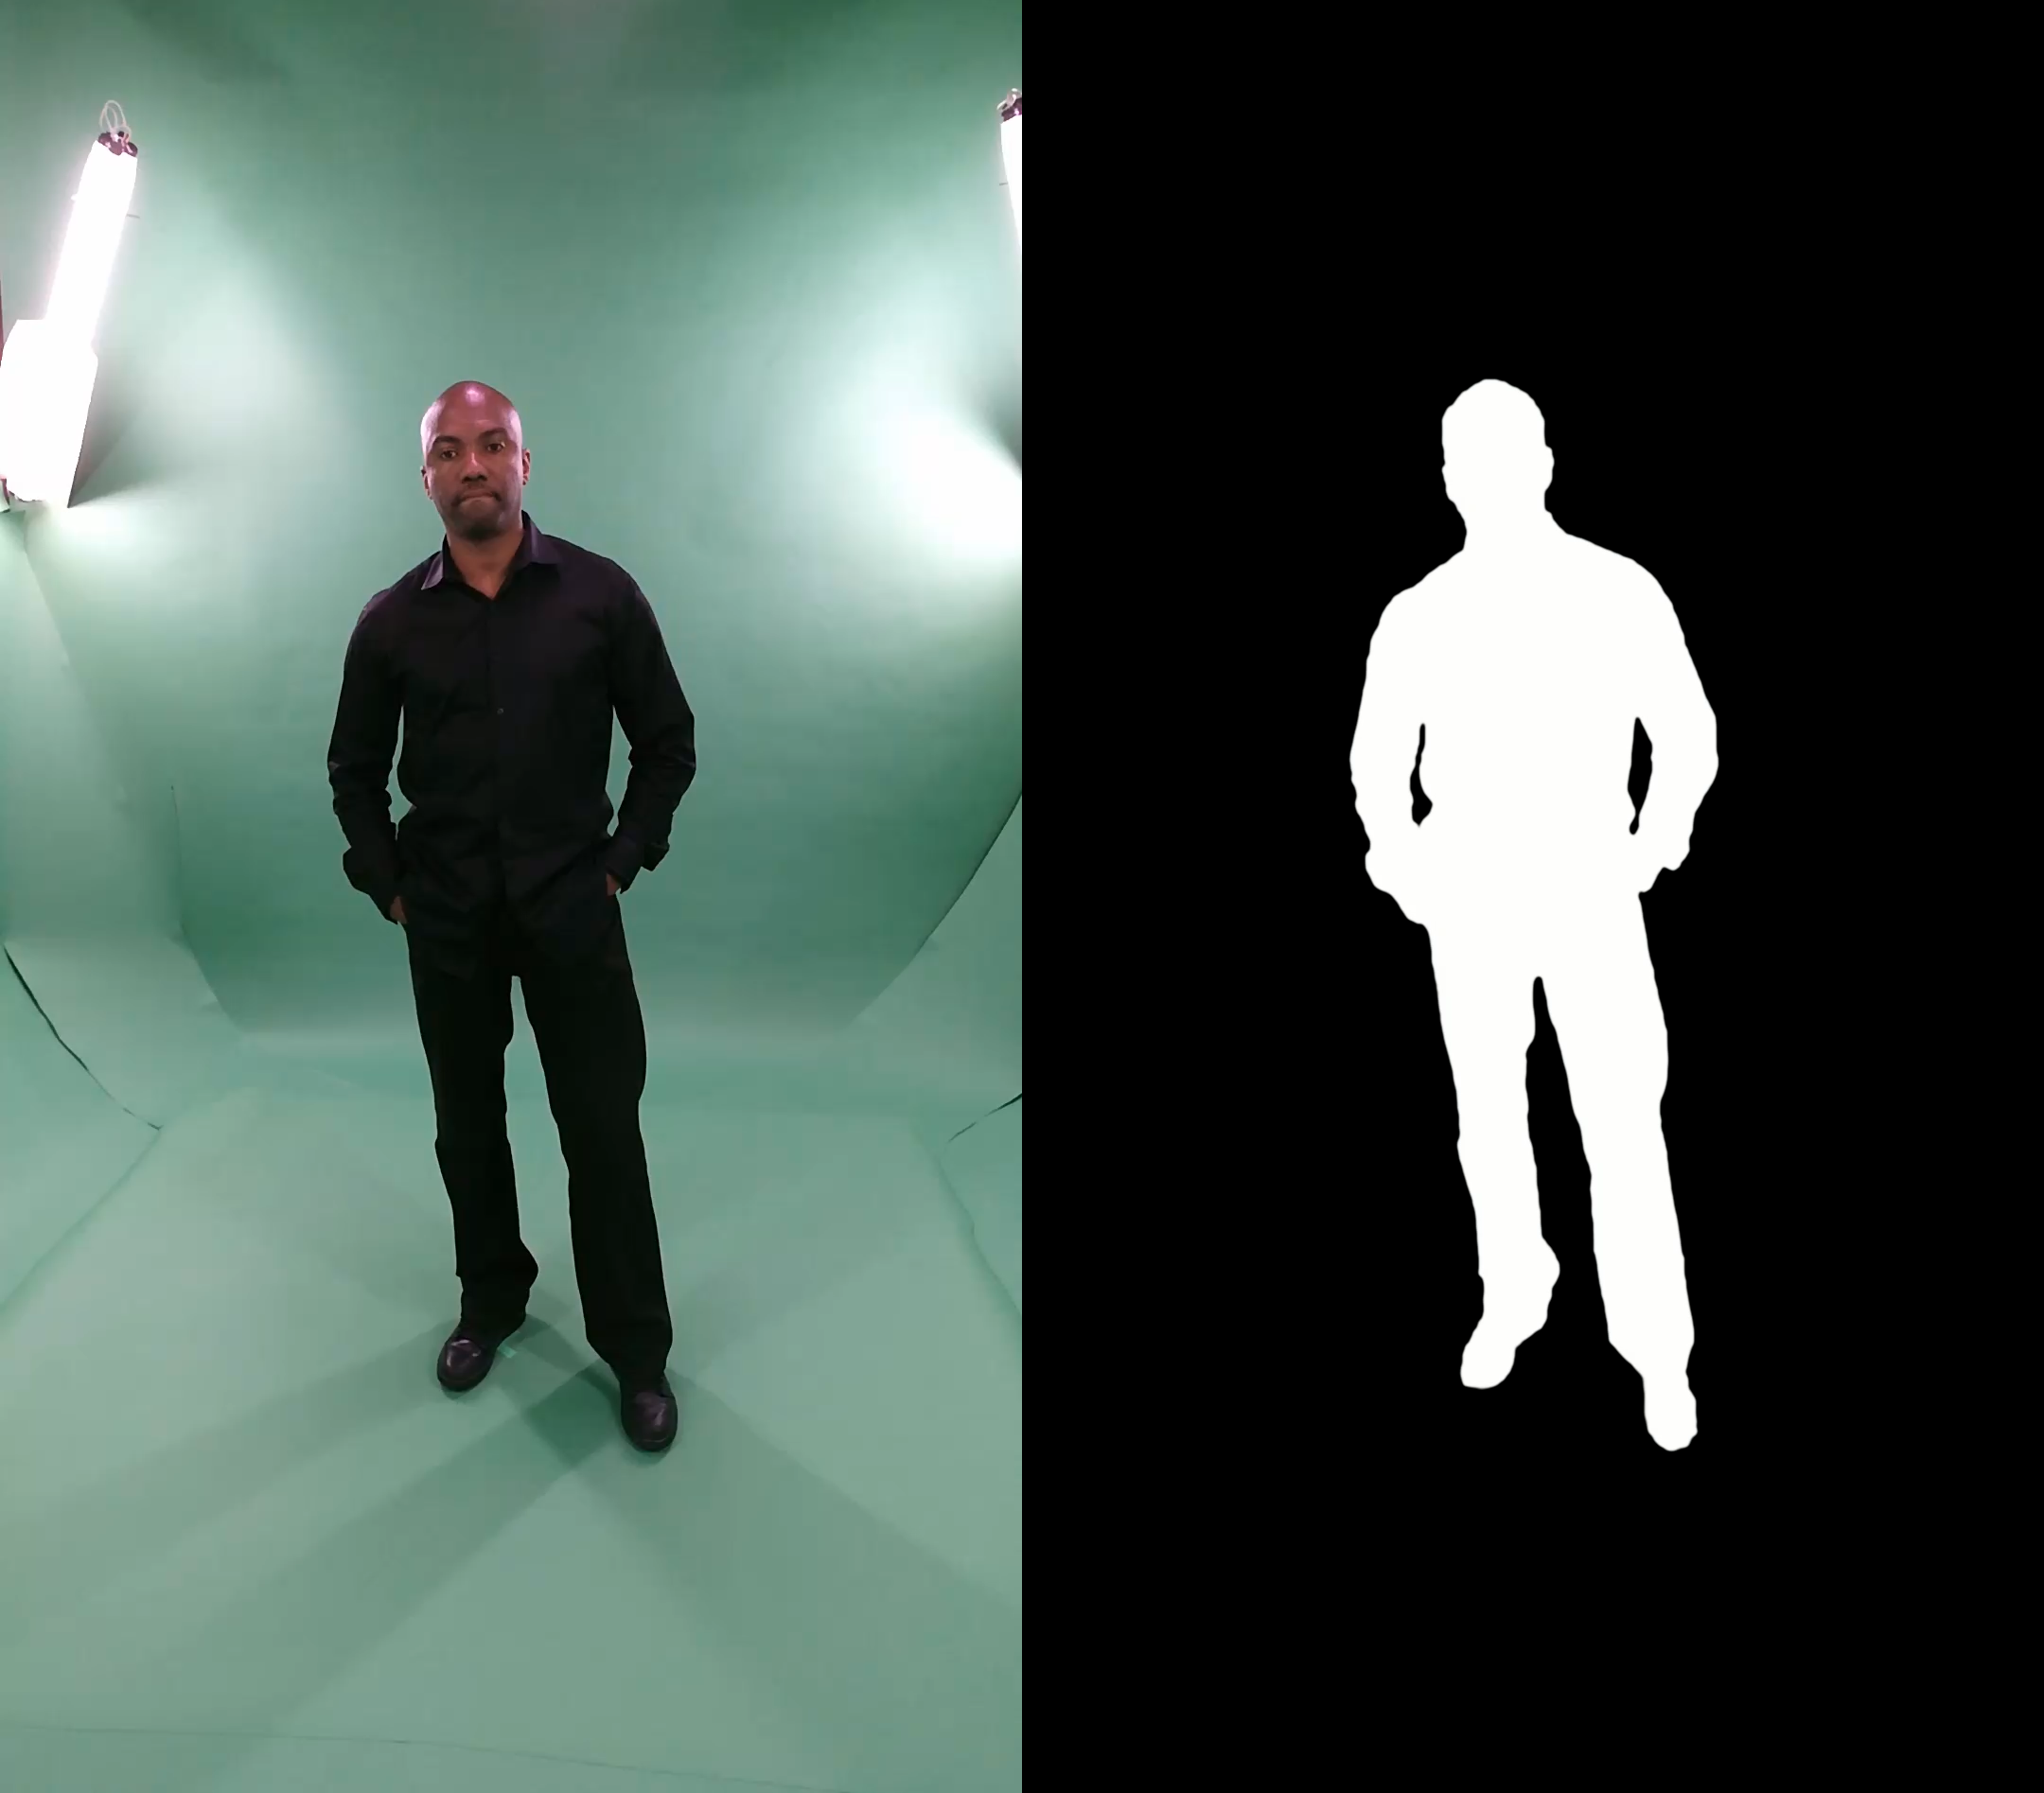 Sensor Video (left), Refinement Mask (right)